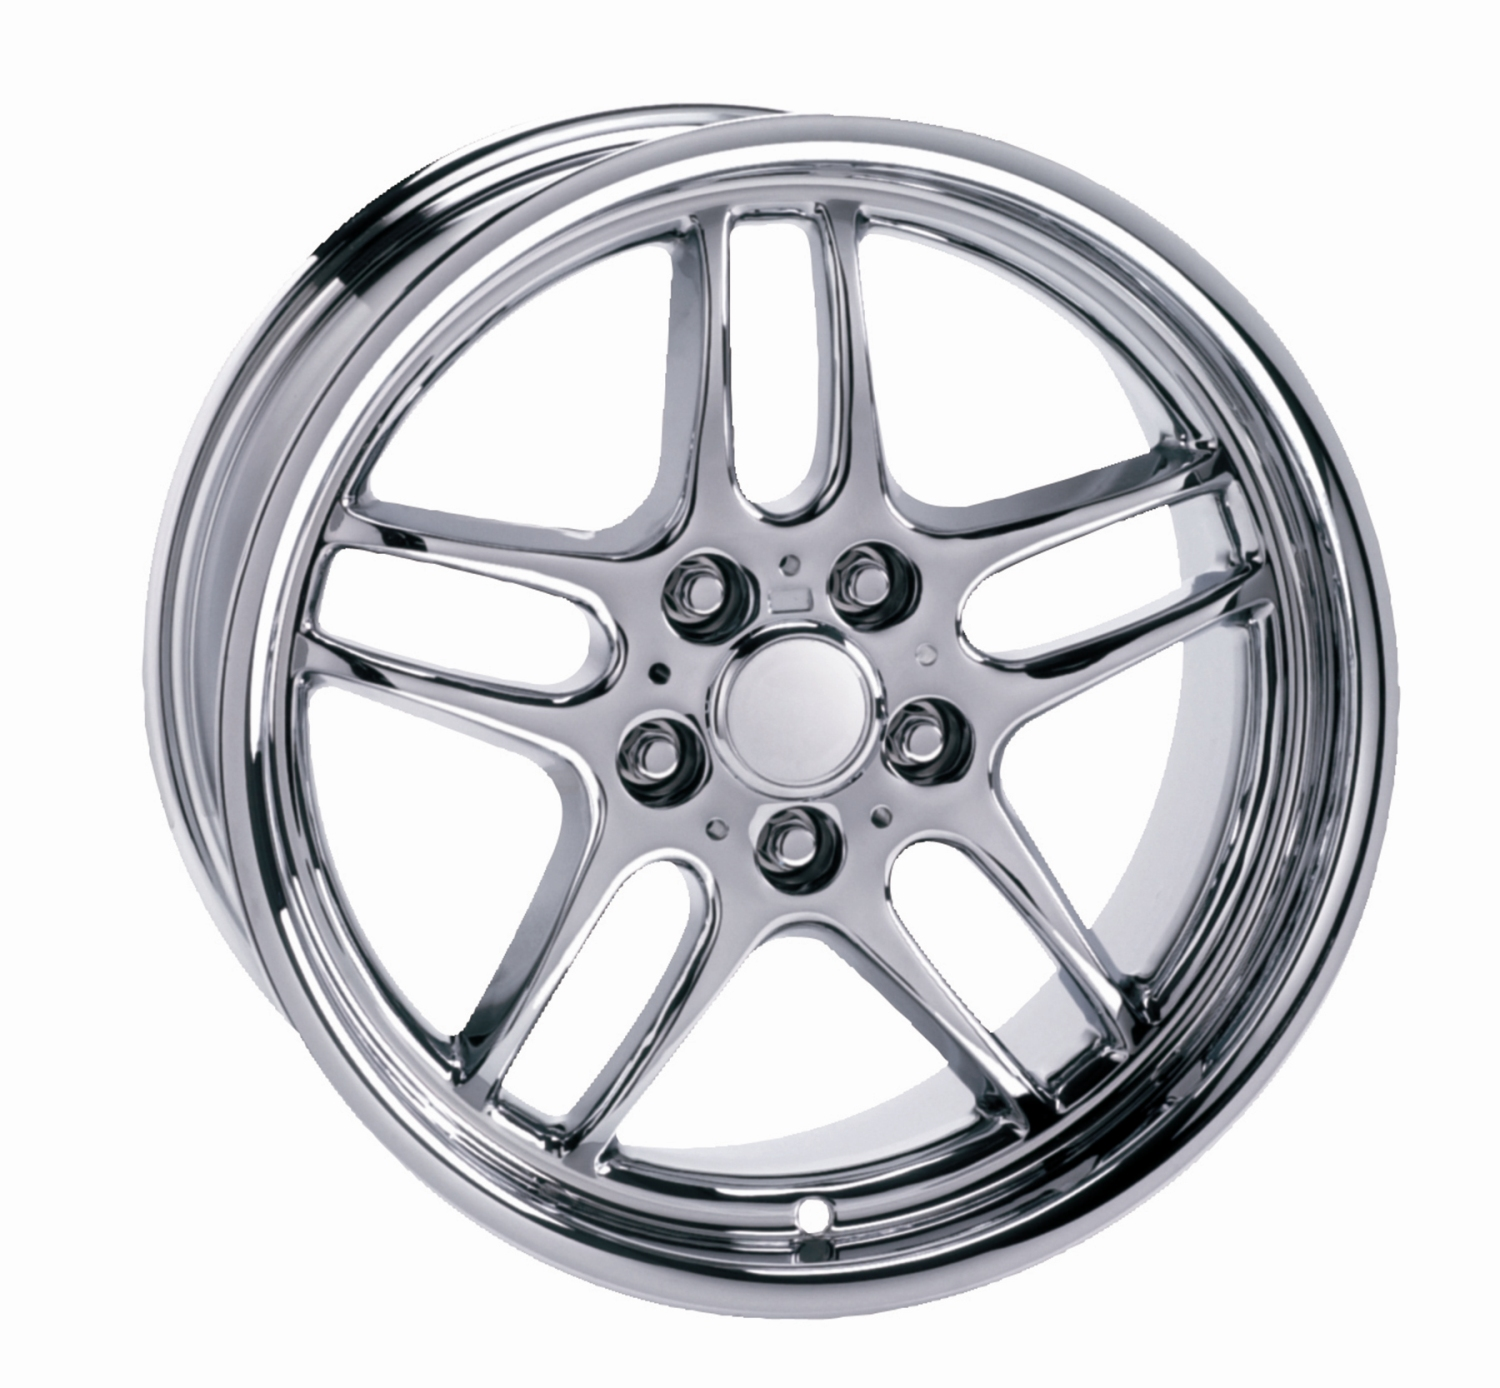 Bmw 7 Series 1988-2010 18x8 5x120 +13 - Parallel Spoke Wheel - Chrome With Cap